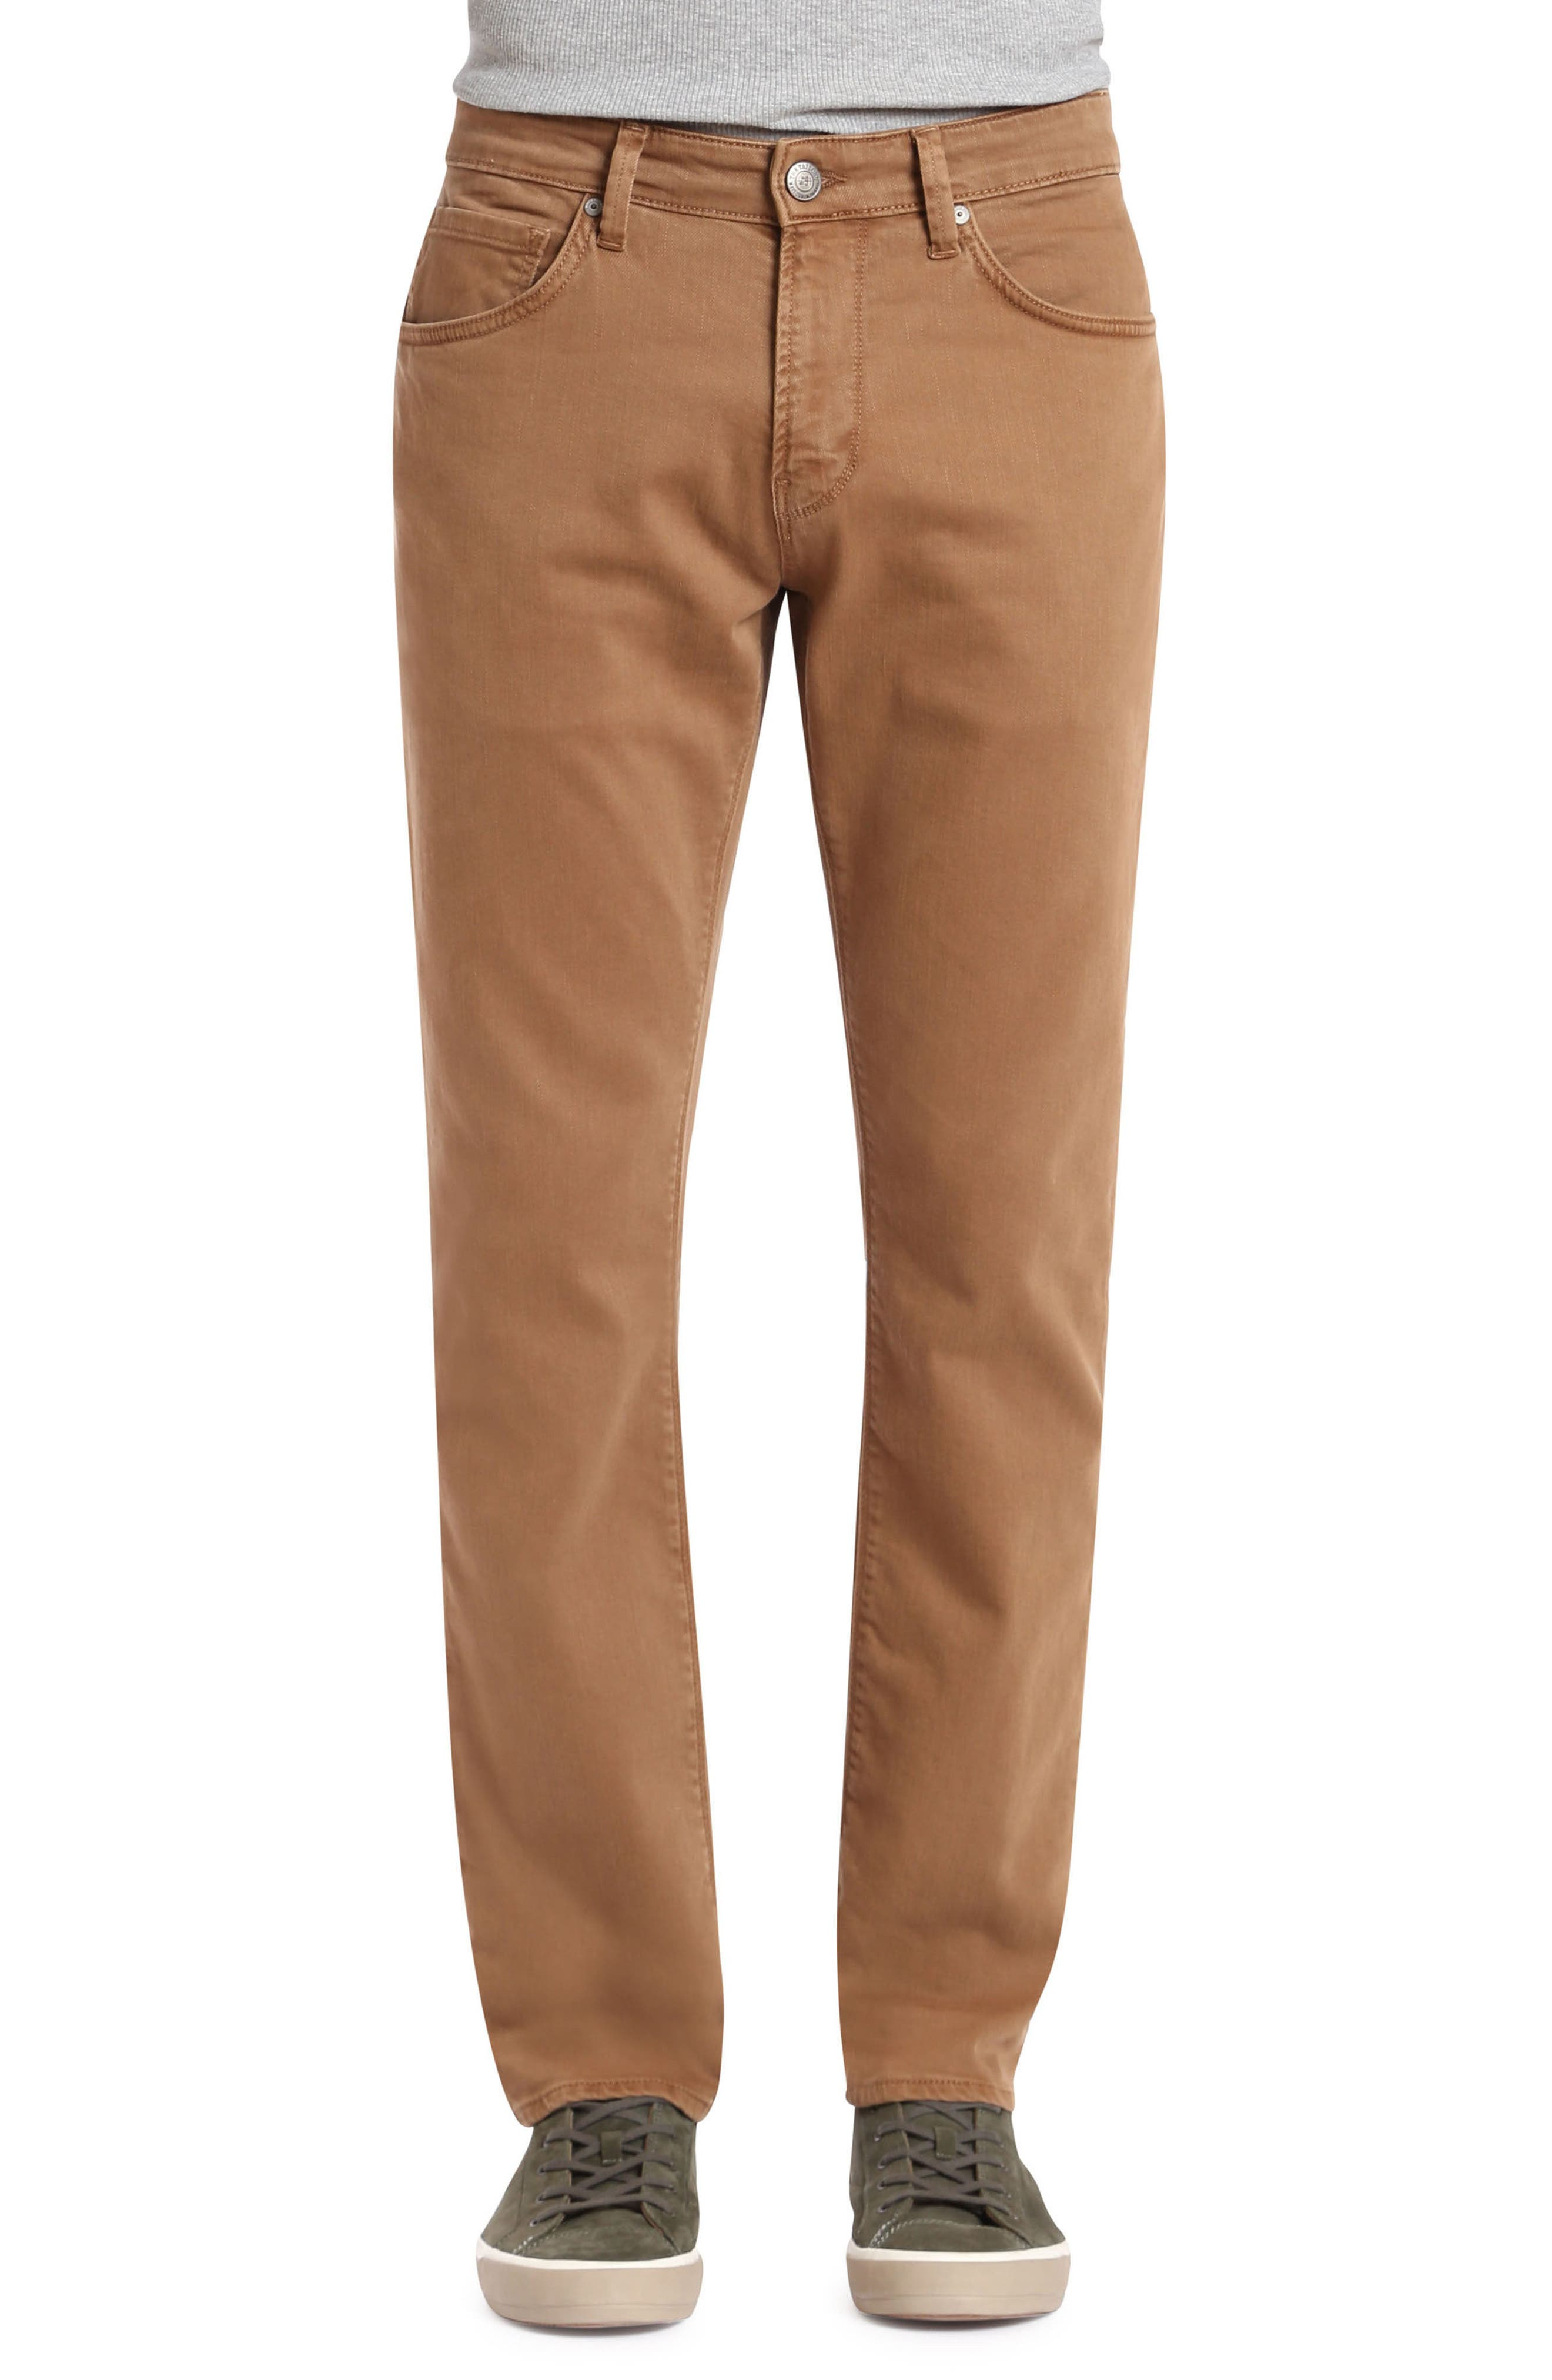 Marcus Slim Straight Leg Pants,                         Main,                         color, Toffee Washed Comfort